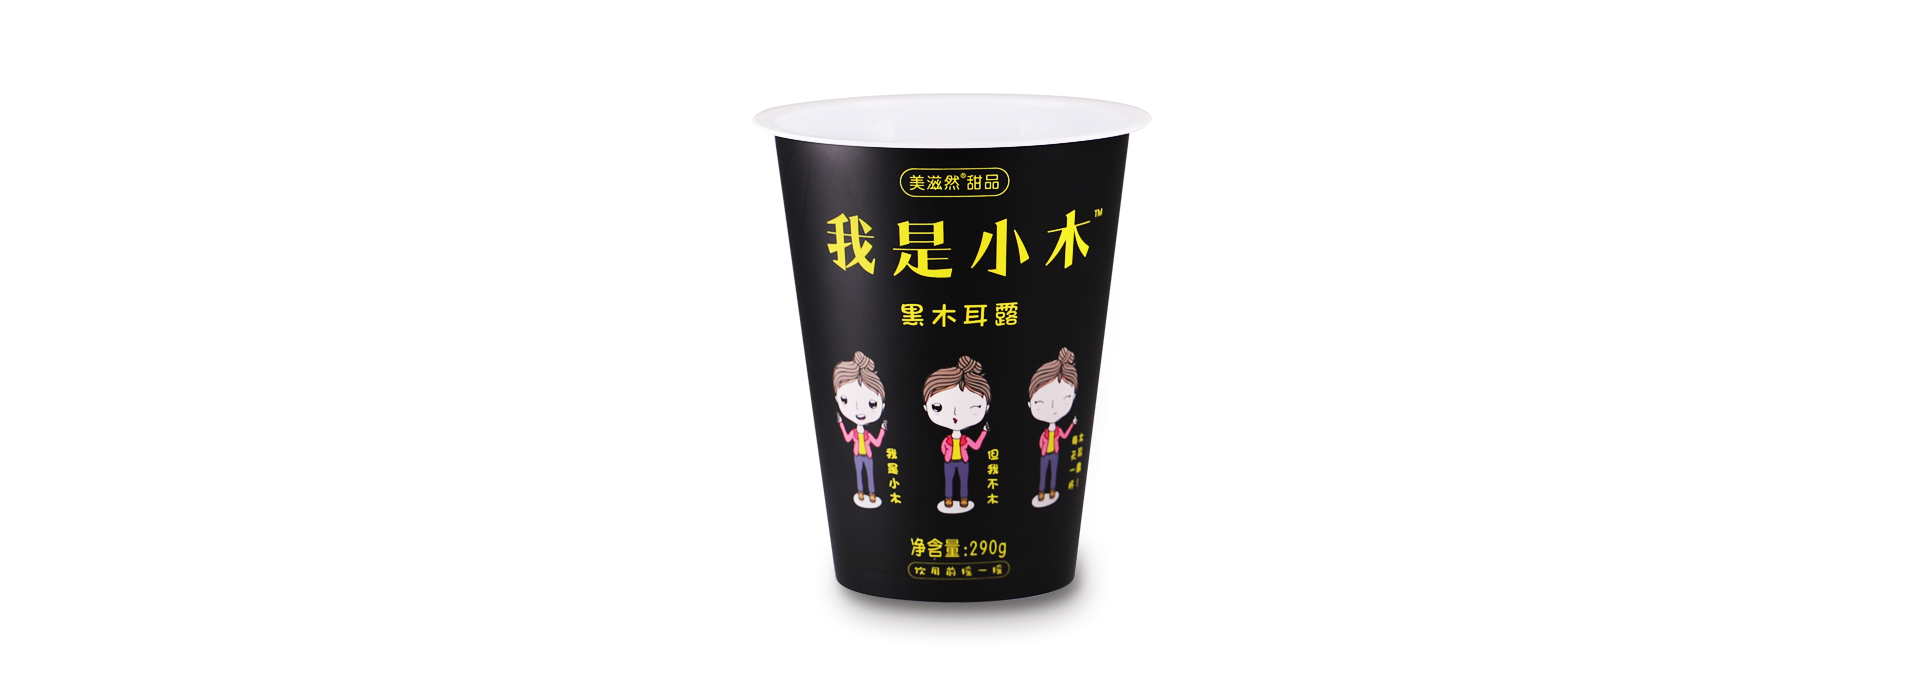 260ml(200g) Drinking Cup